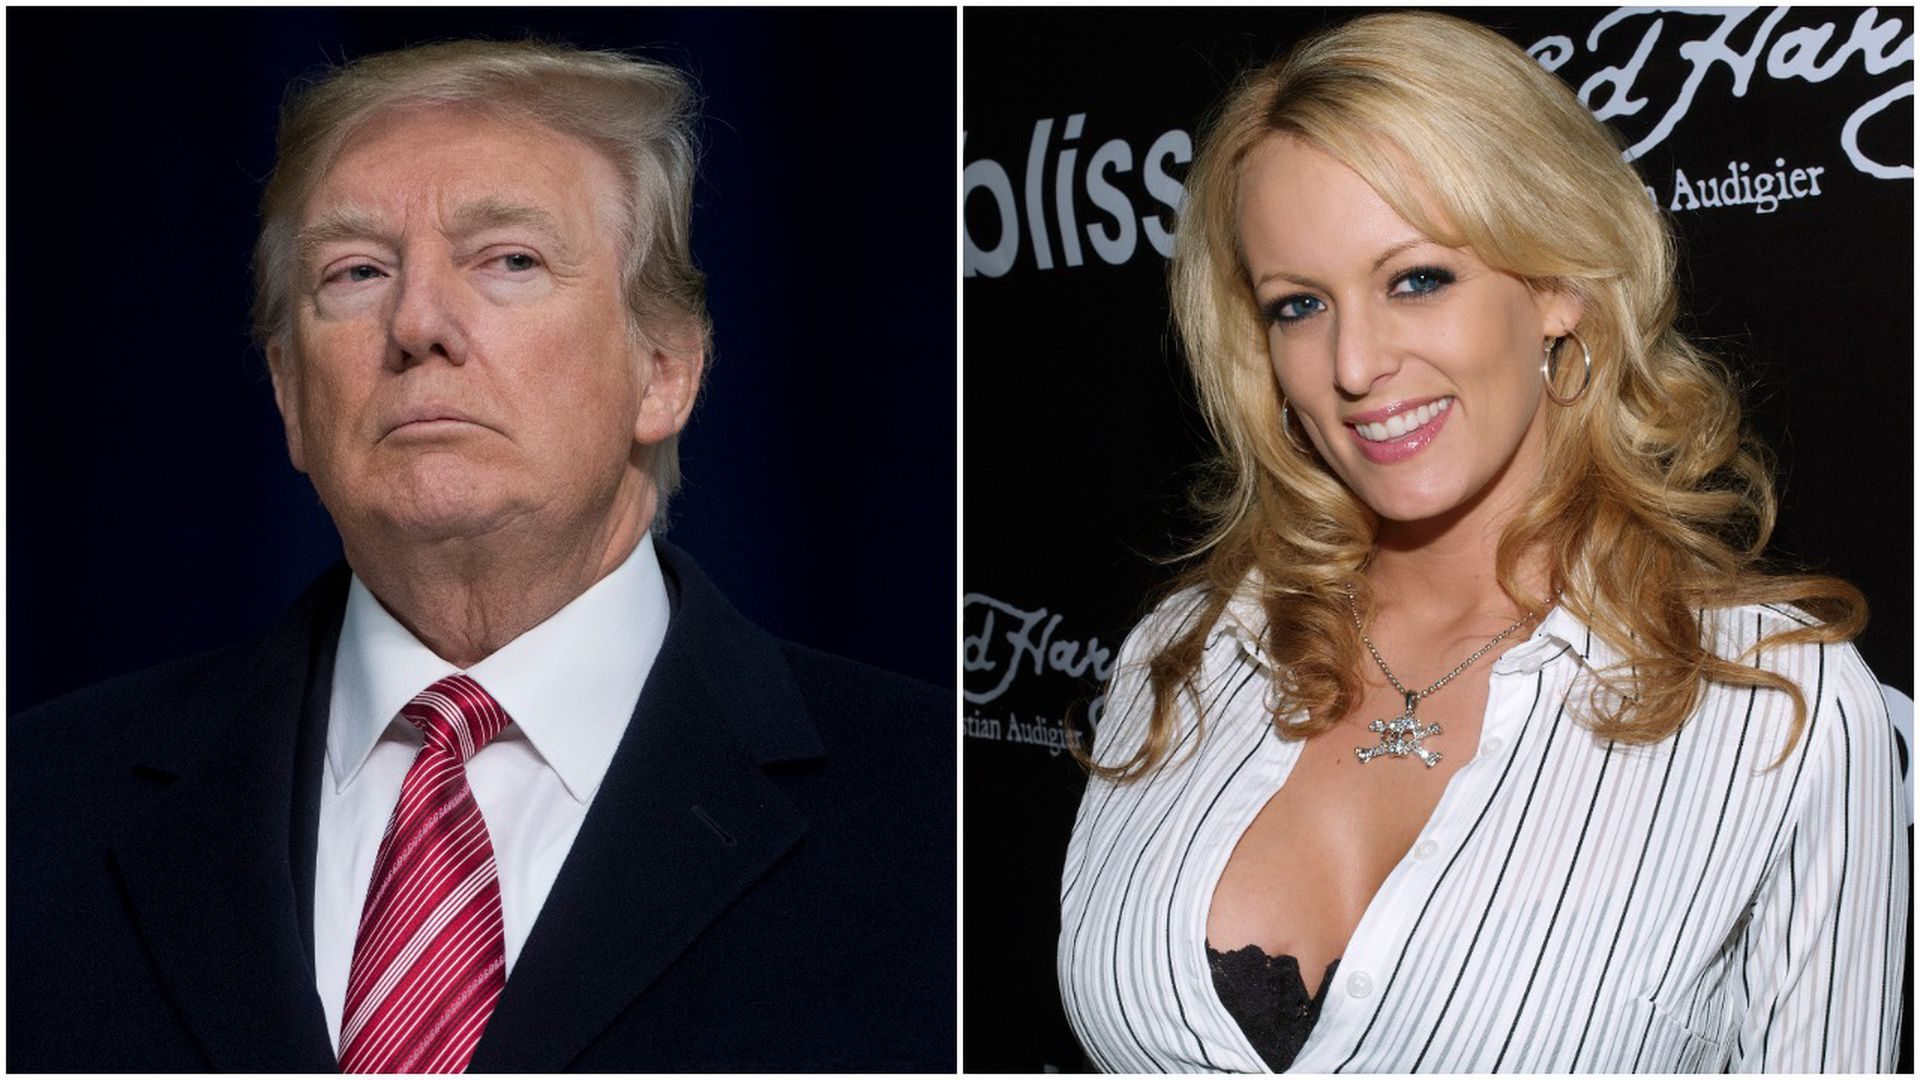 President Trump and Stormy Daniels